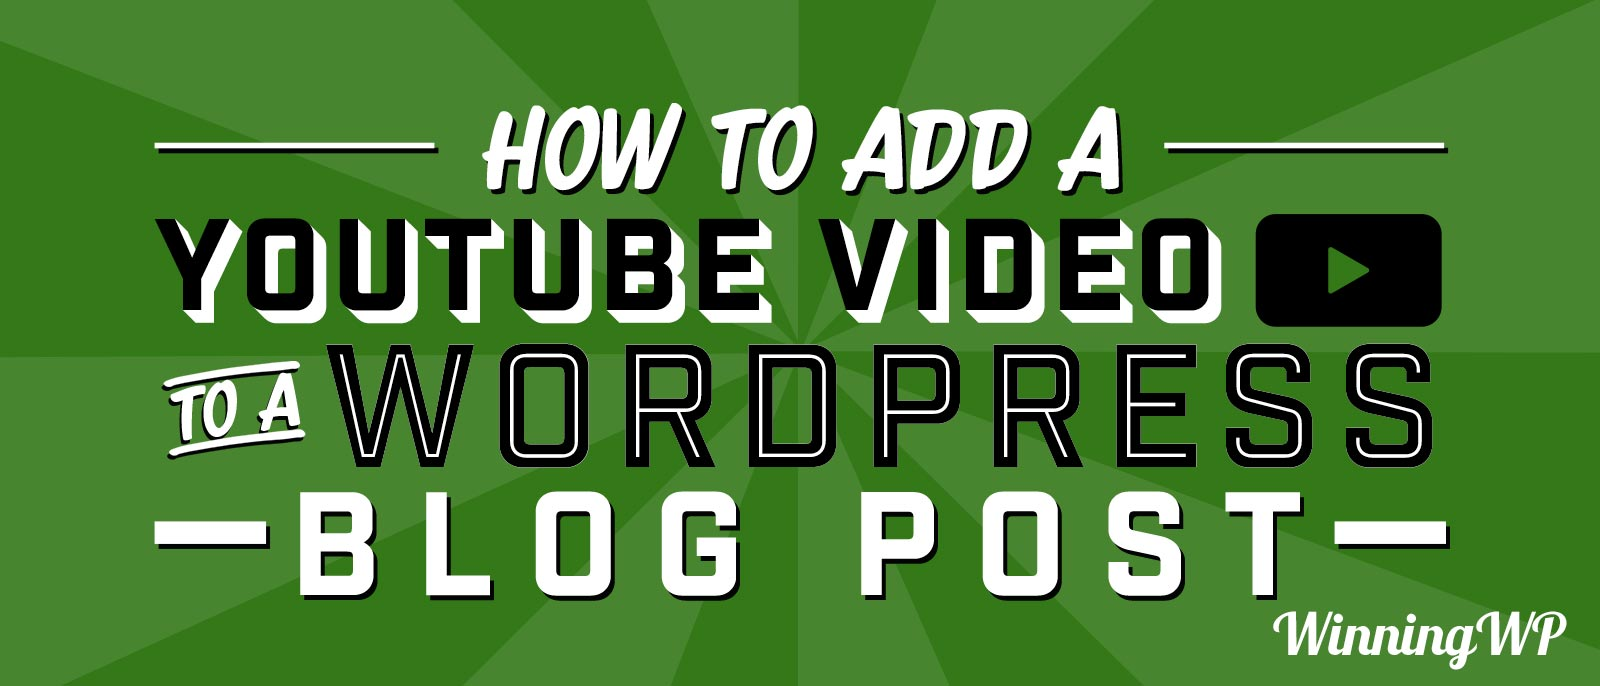 How to Add a YouTube Video to a WordPress Blog Post (YouTube Video)